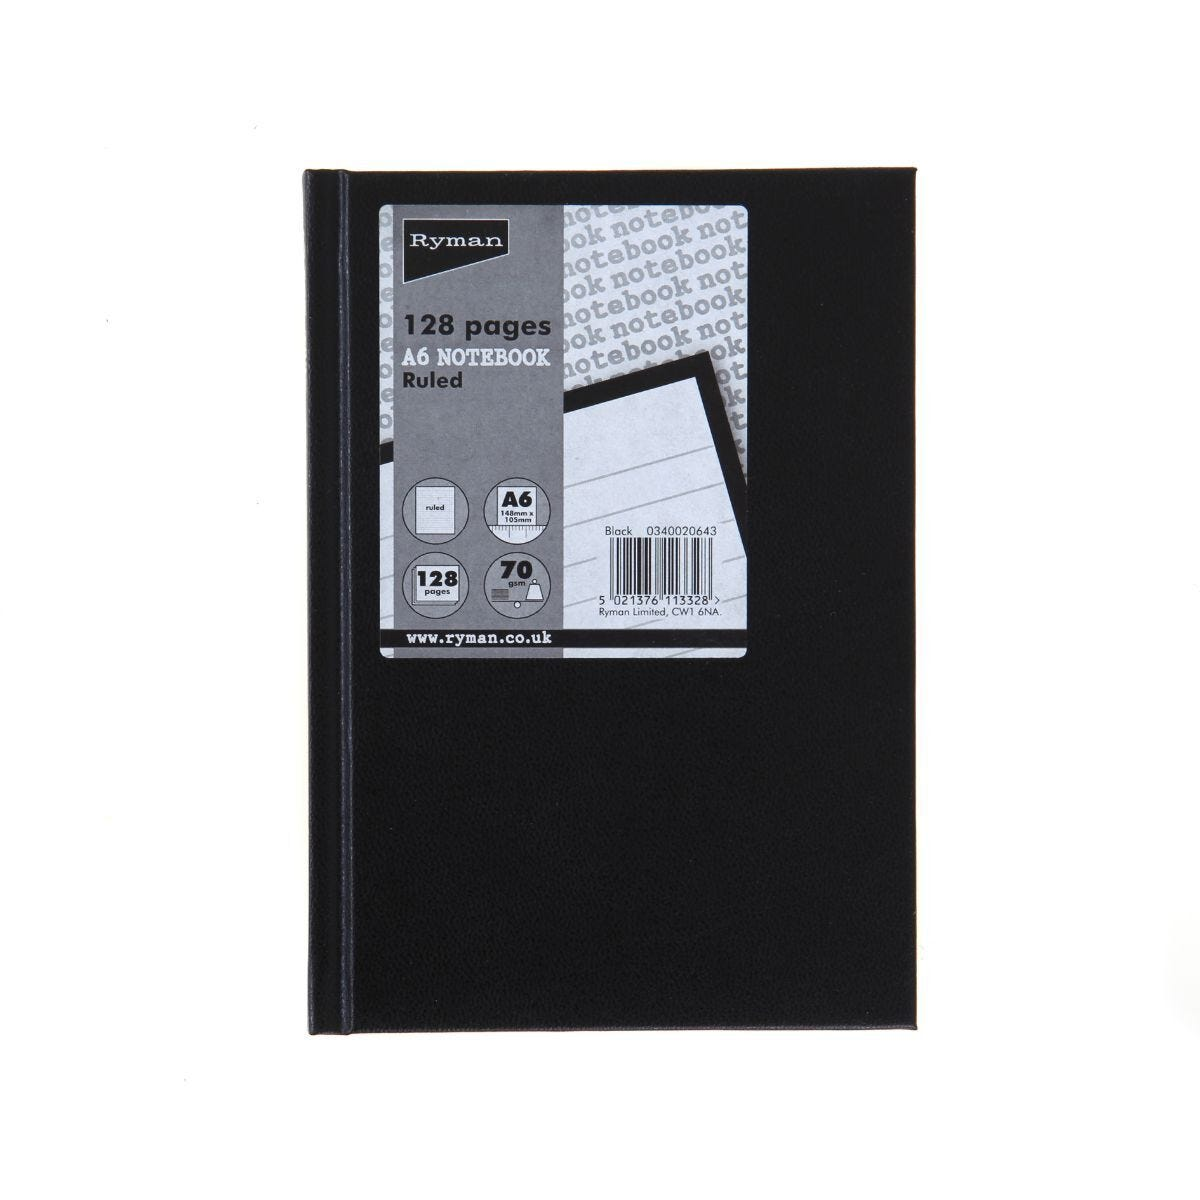 Ryman Casebound Memo Book Ruled A6 128 Pages 70gsm